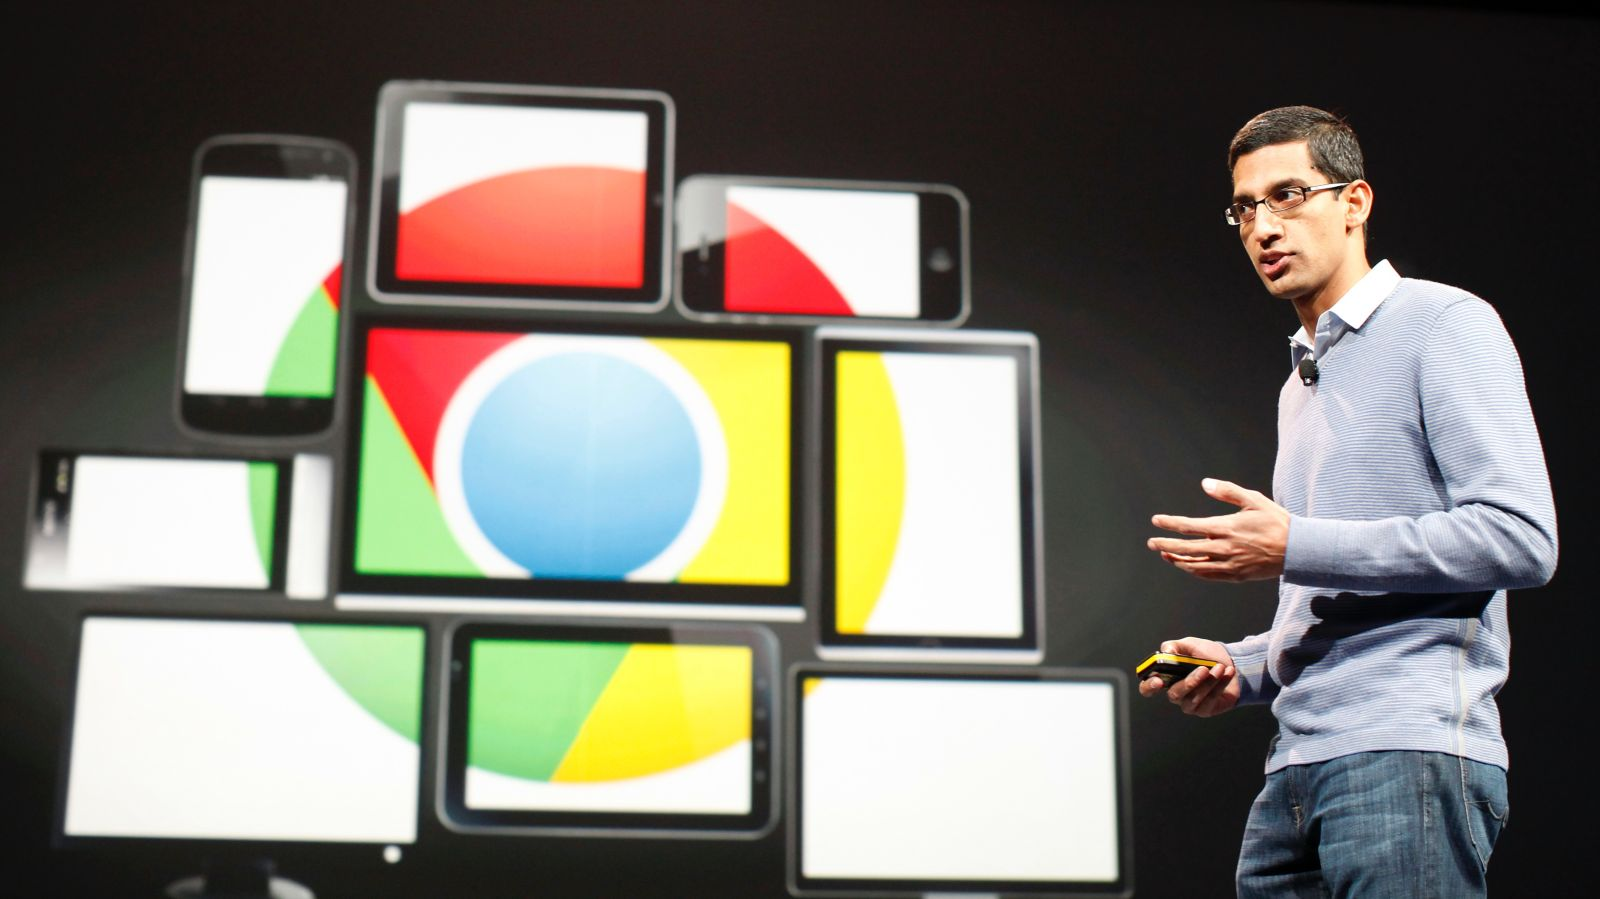 Sundar Pichai, then nsenior vice president of Google, now  is currently the Chief Executive Officer of Google Inc., speaks during Google I/O Conference at Moscone Center in San Francisco, June 28, 2012. REUTERS/Stephen Lam